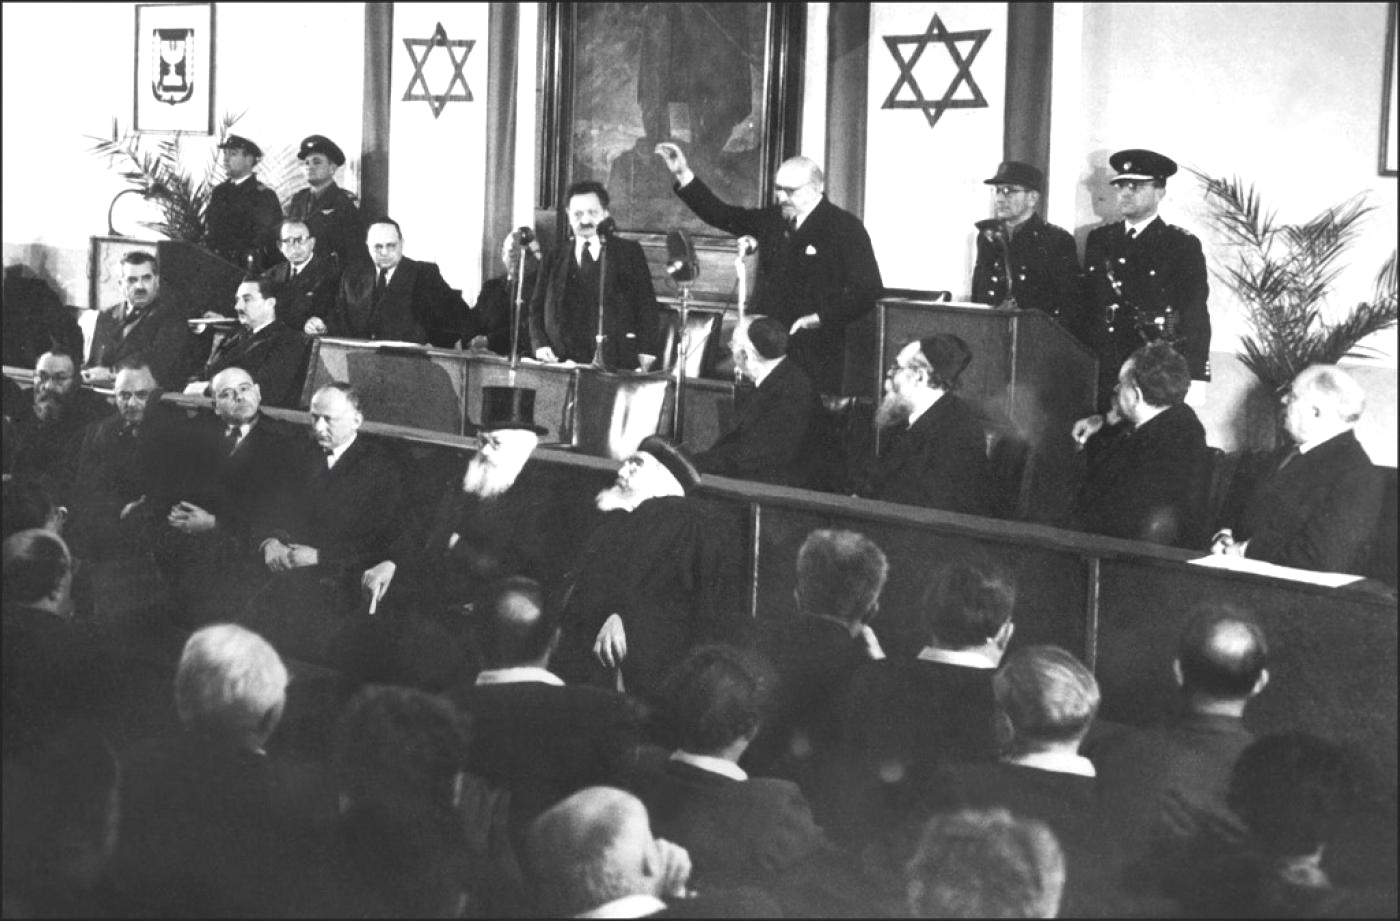 Chaim Weizmann is sworn in after being elected as Israel's first president in 1949 (AFP)